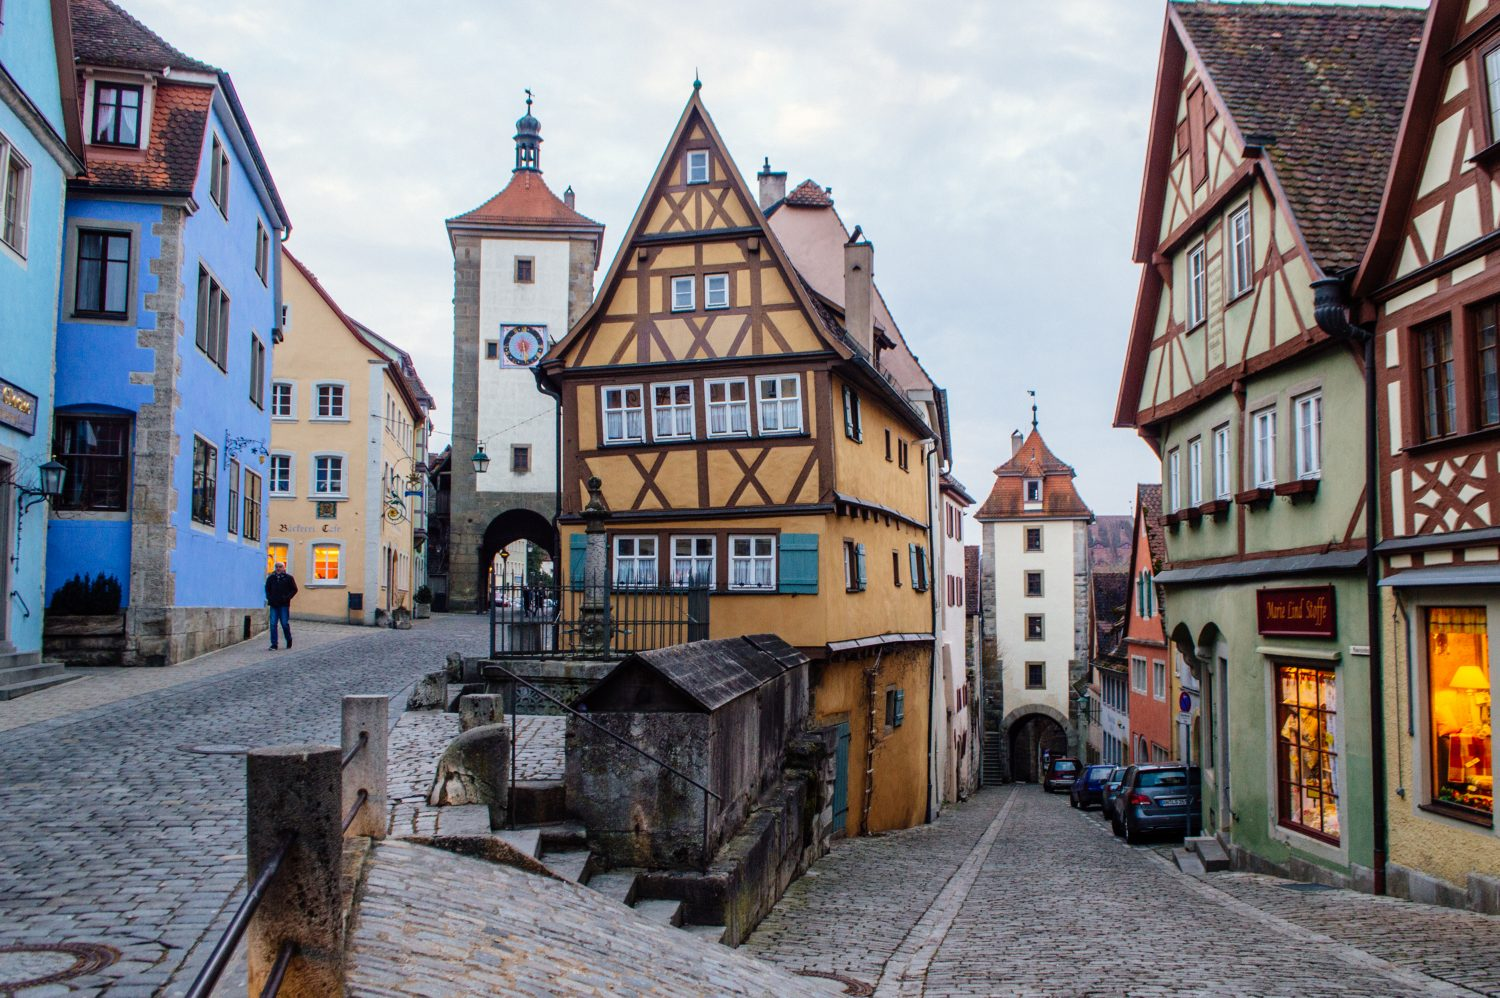 A must-read guide if you're visiting Rothenburg Ob Der Tauber, Germany on a daytrip. This beautiful medieval town is one of the cutest fairytale towns in Germany. This guide will walk you through what to see and do with a 1 day itinerary included.